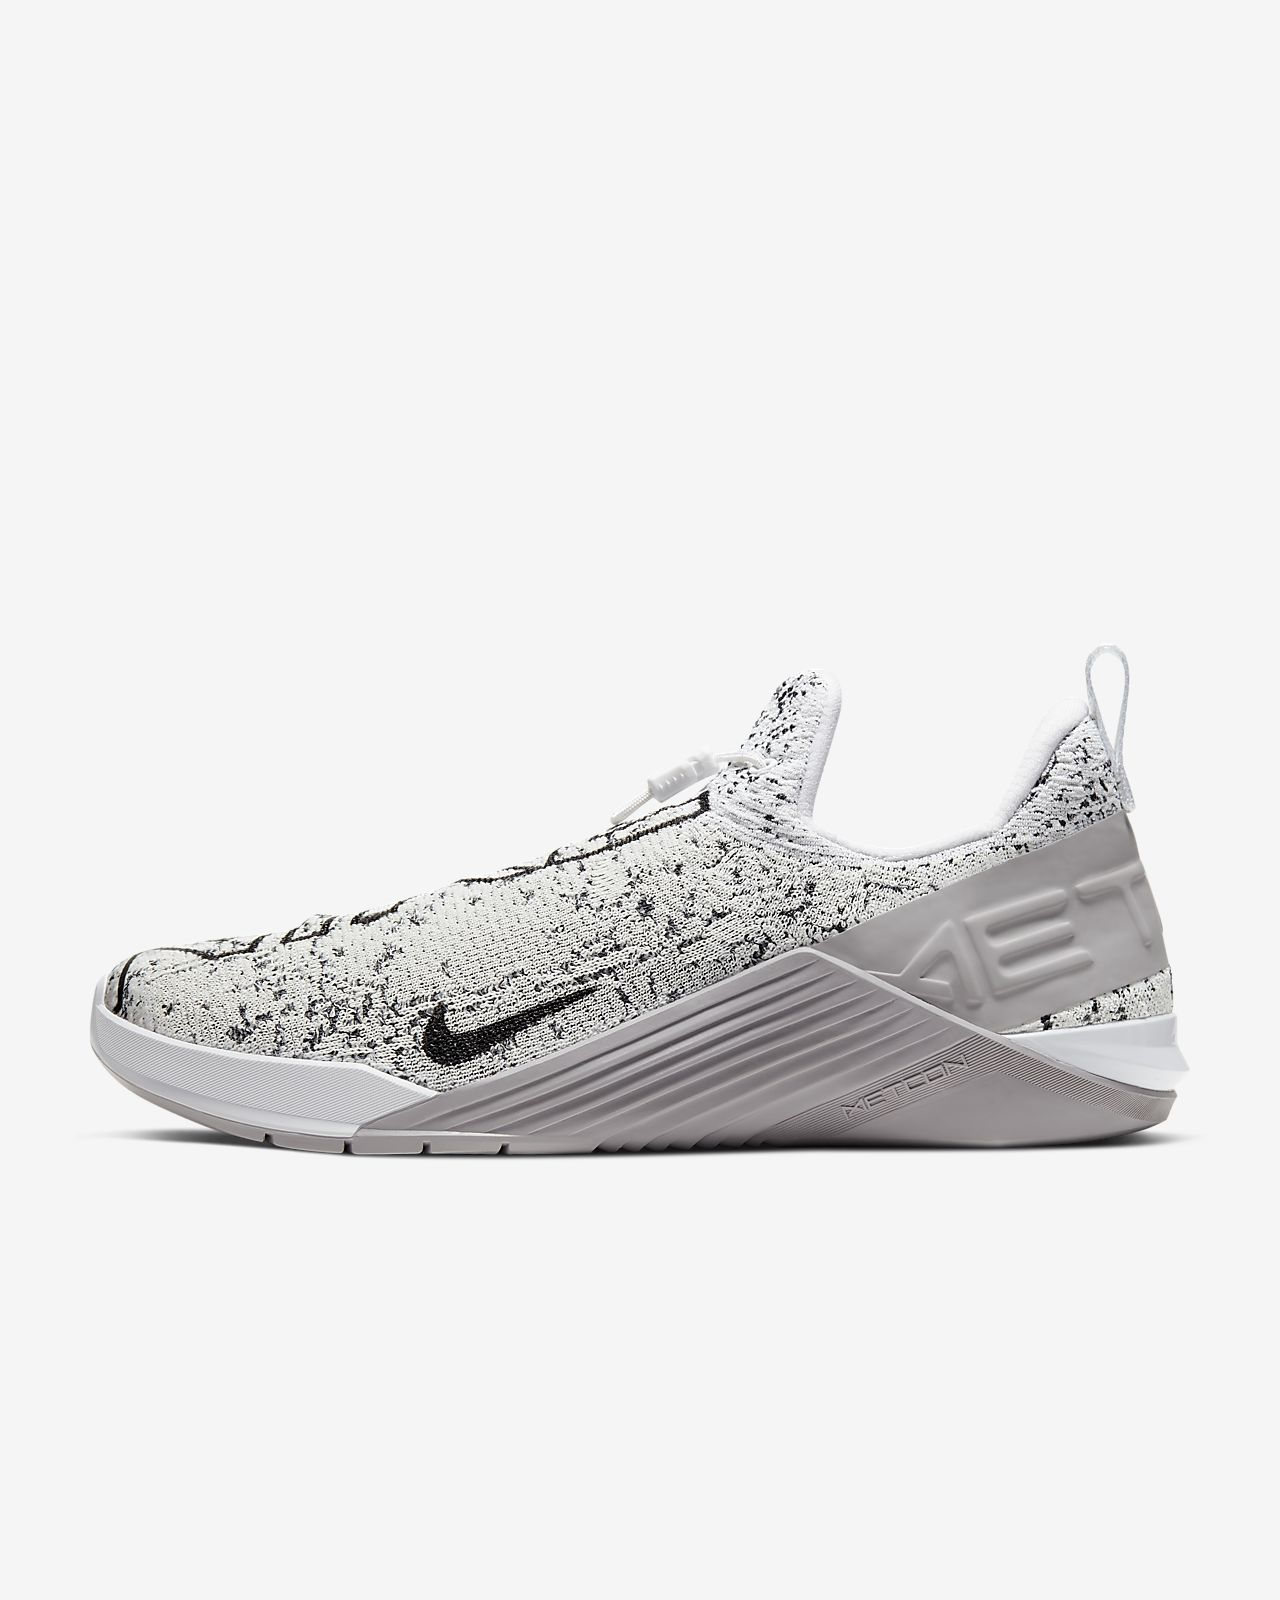 Chaussure de training Nike React Metcon pour Homme